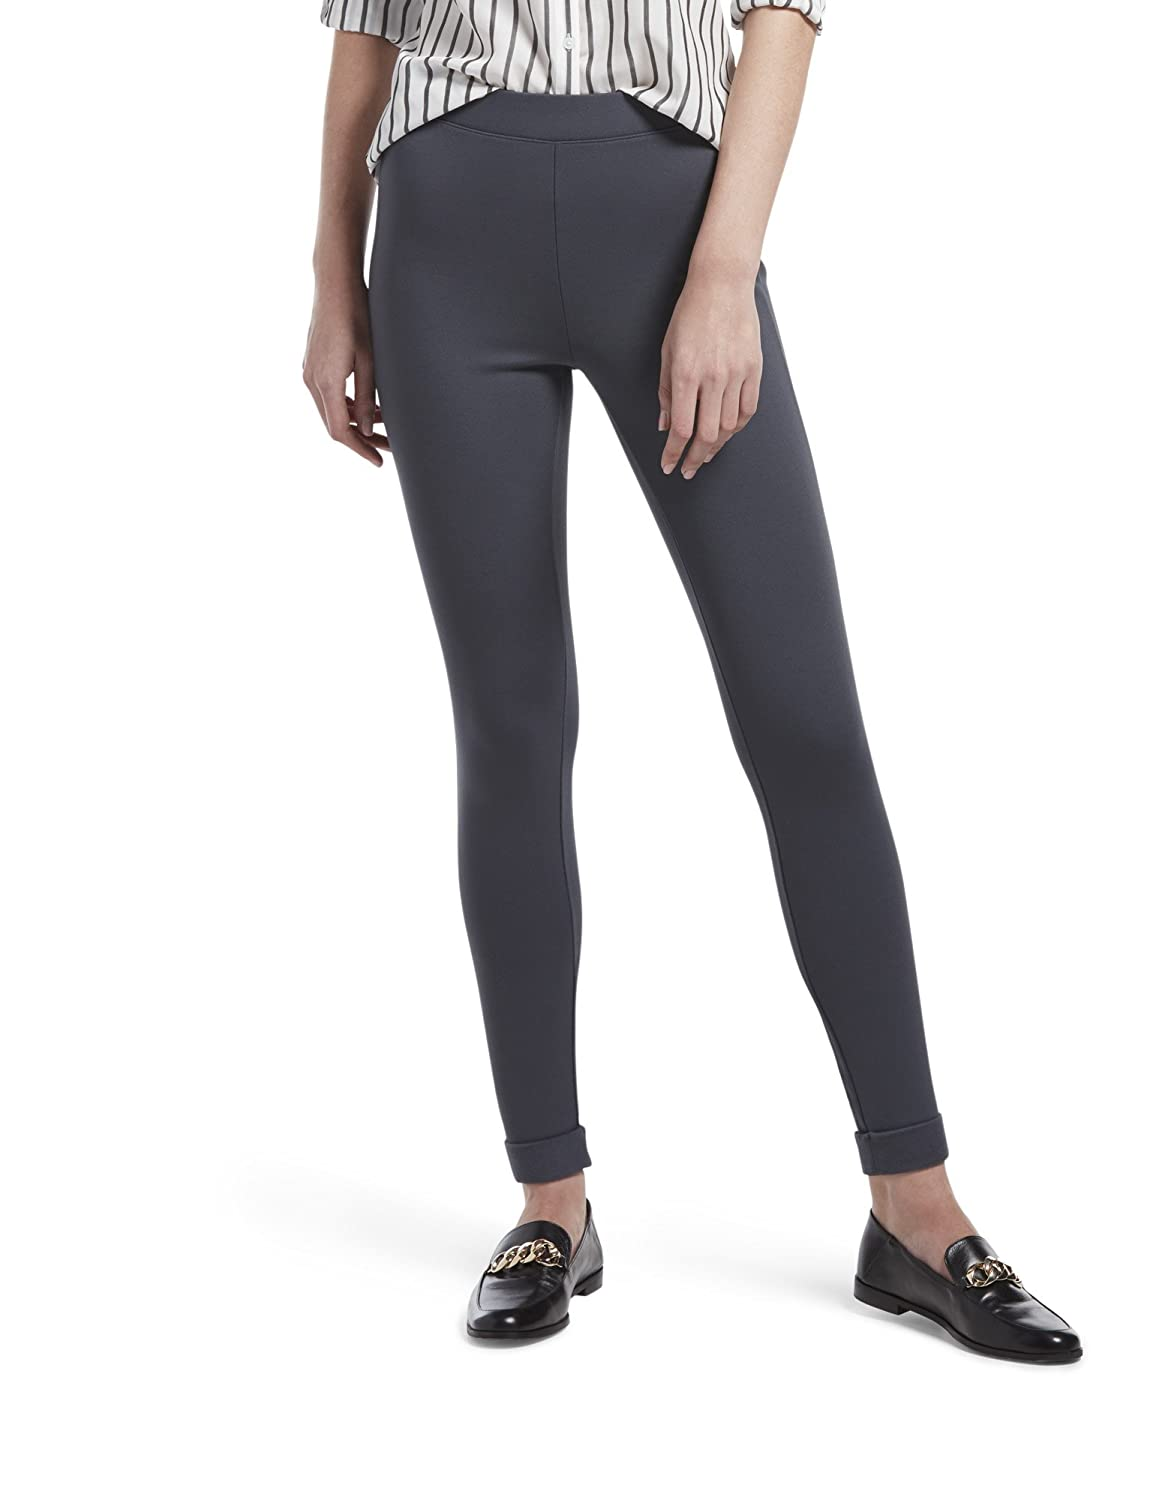 4048c53a16eb6 HUE Women's Fleece Lined High Waist Ponte Legging at Amazon Women's  Clothing store: